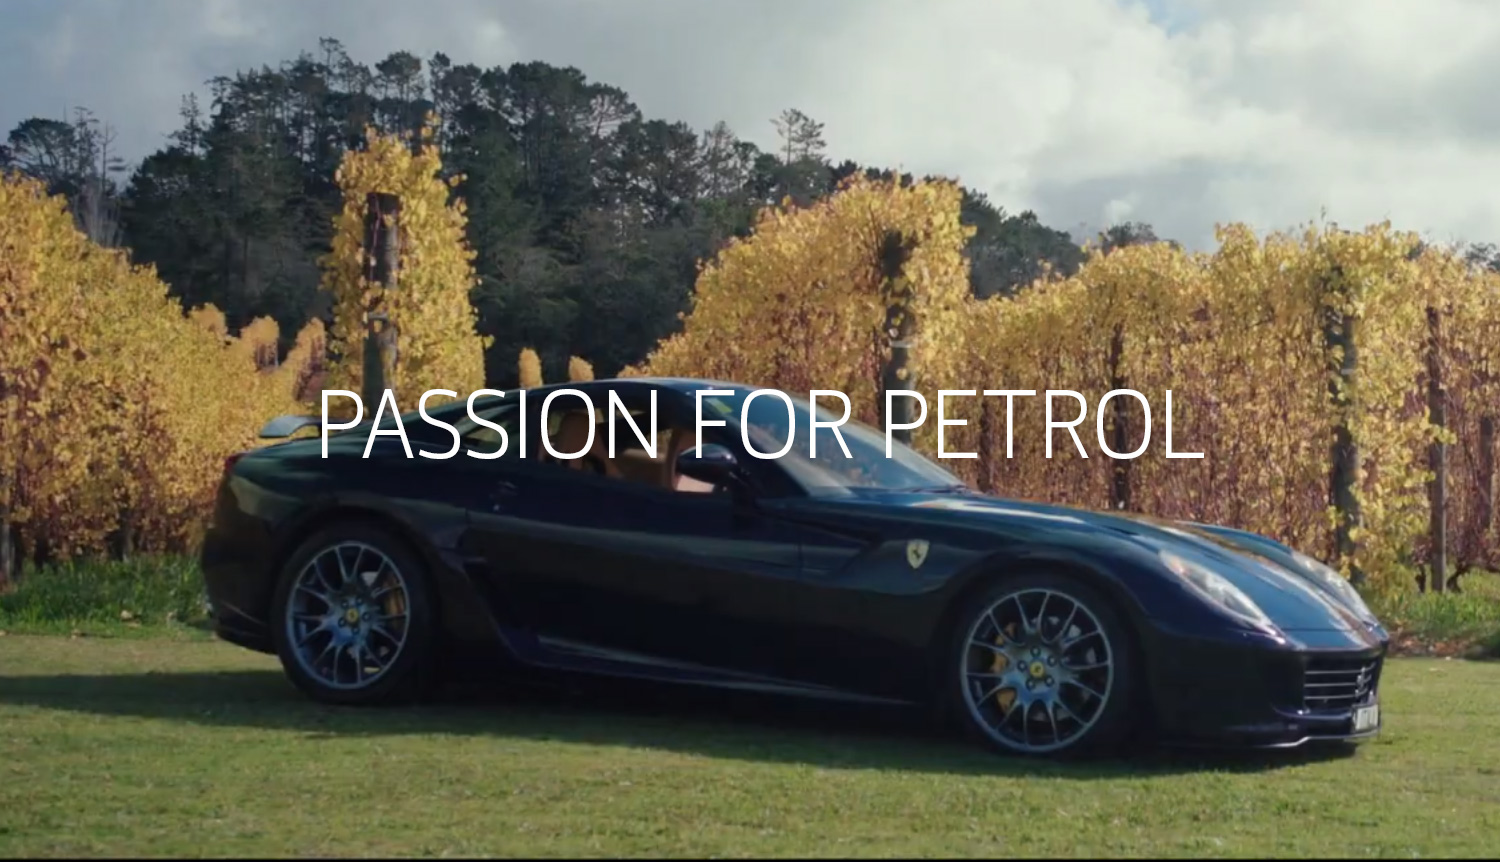 passion-for-petrol.jpg